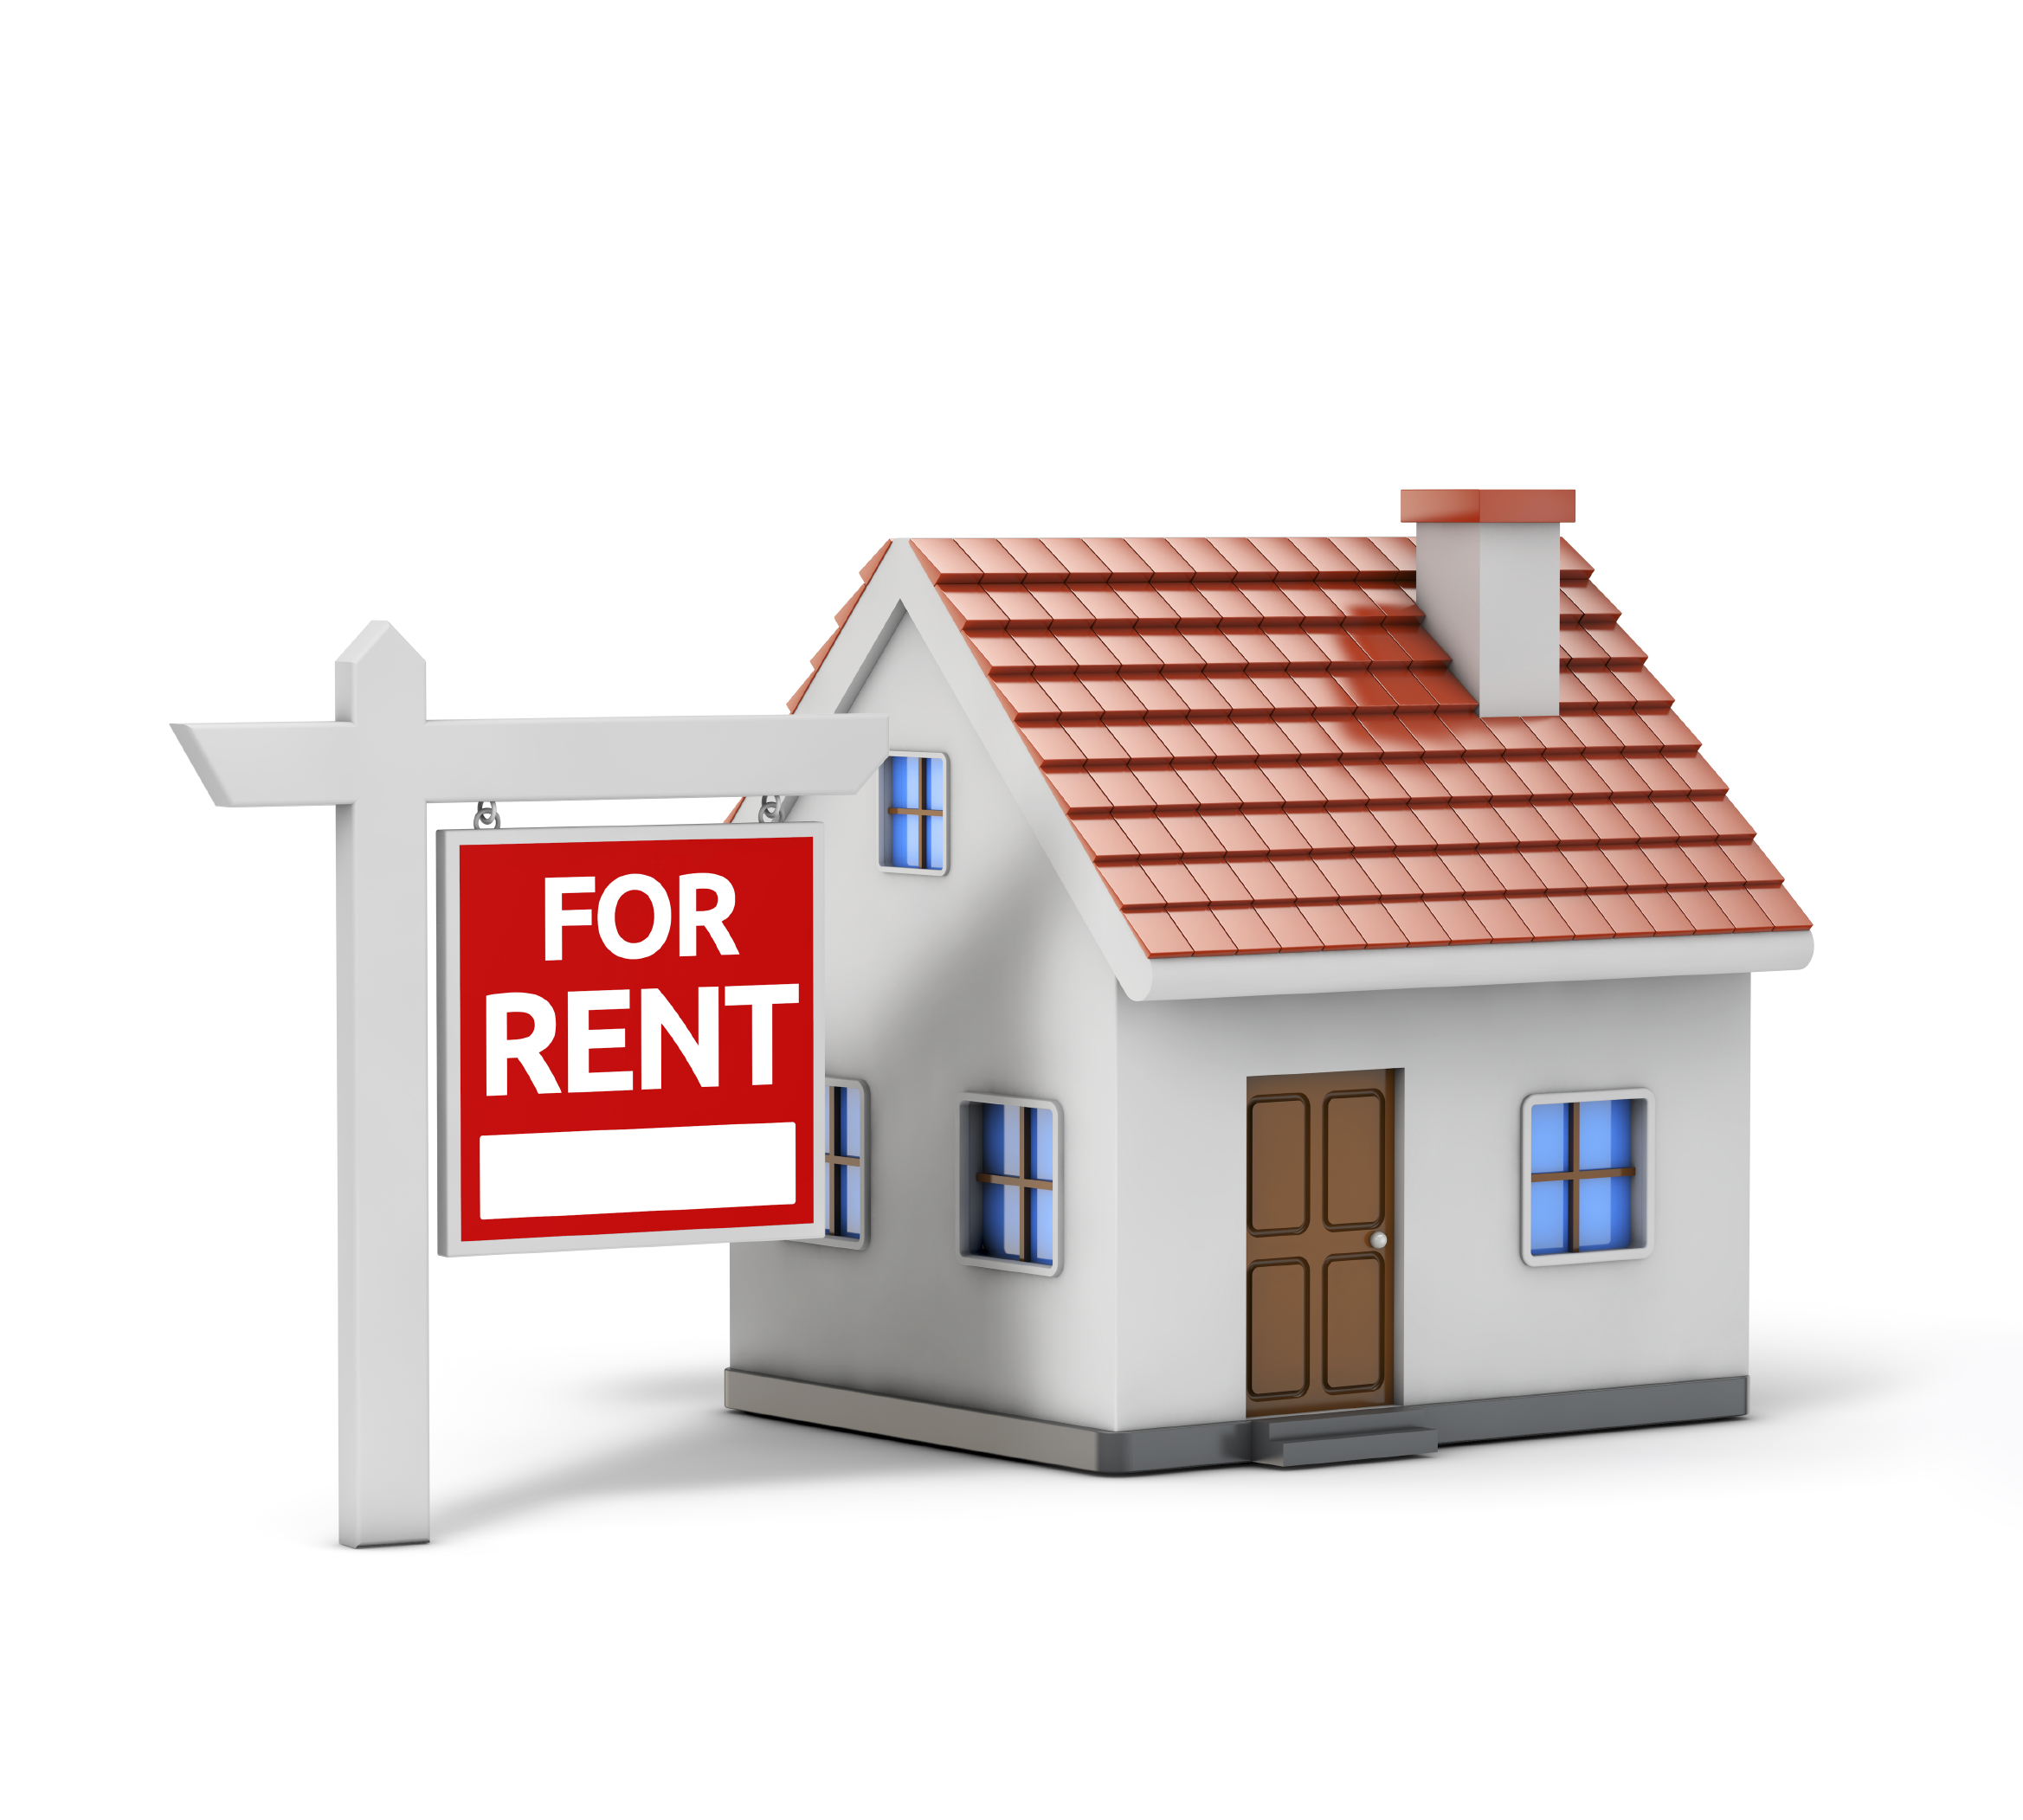 There are many questions to ask in the lettings market when investing in rental properties